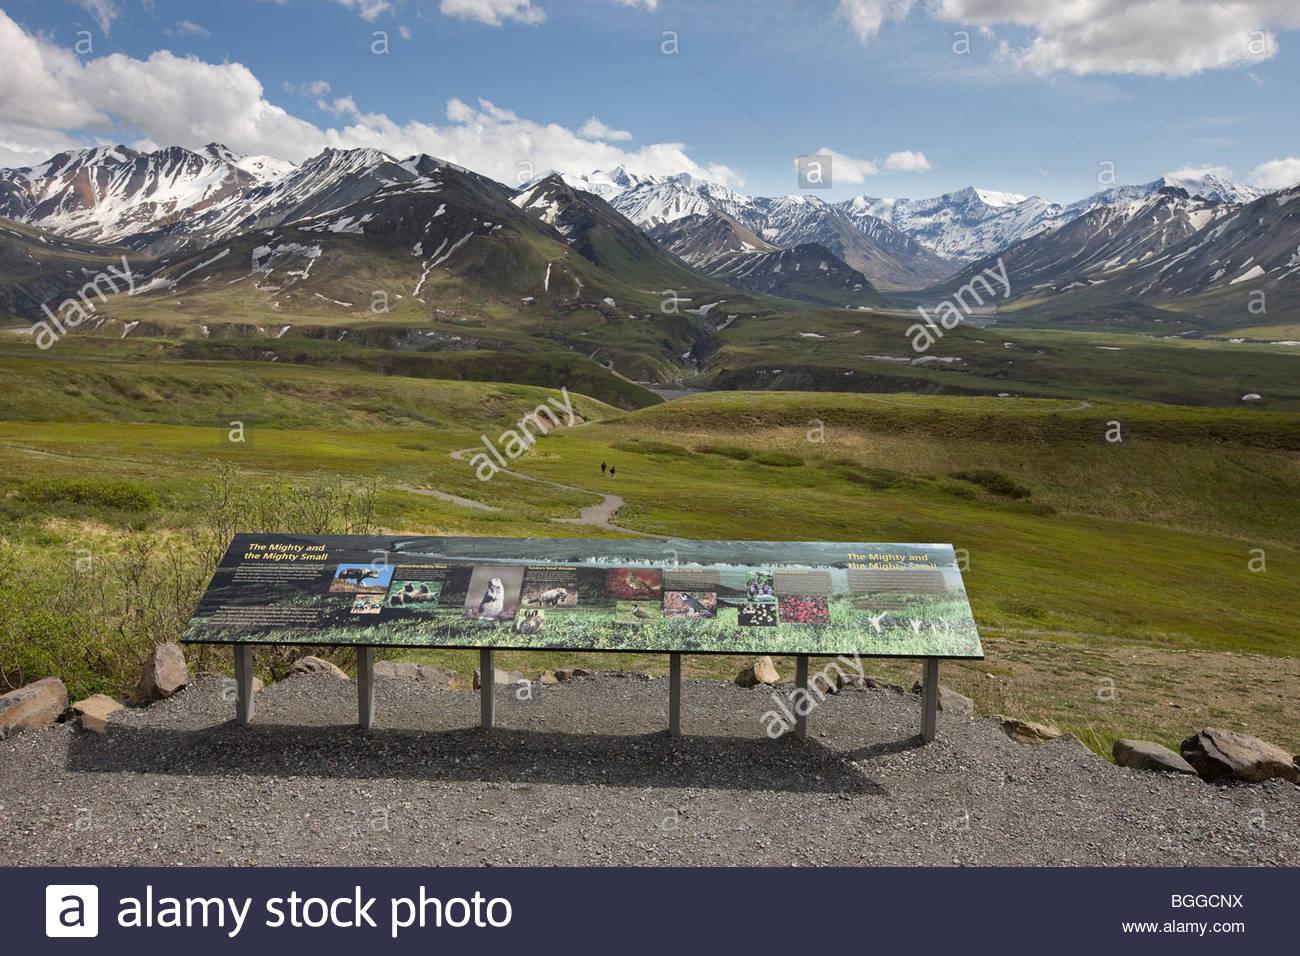 Interpretive trails and signs around the new Eielson Visitor Center in Denali National Park - Stock Image